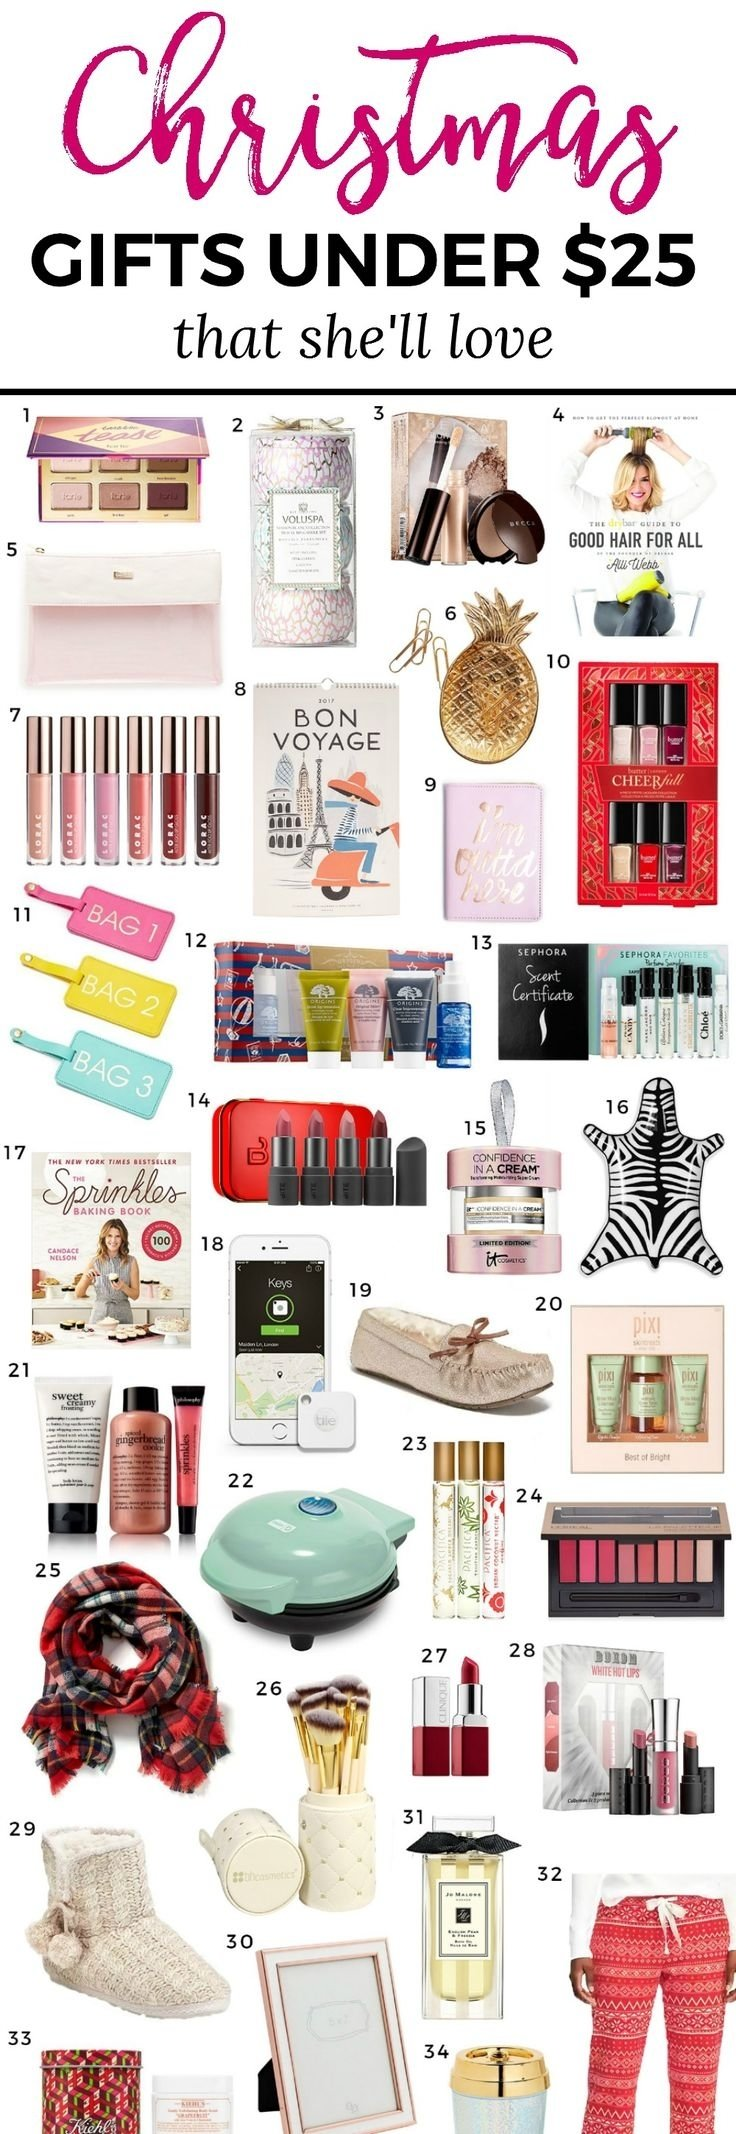 10 Most Recommended Gift Ideas For Young Women 25 best gifts for young women ideas on pinterest girls camp room ideas 2 2020